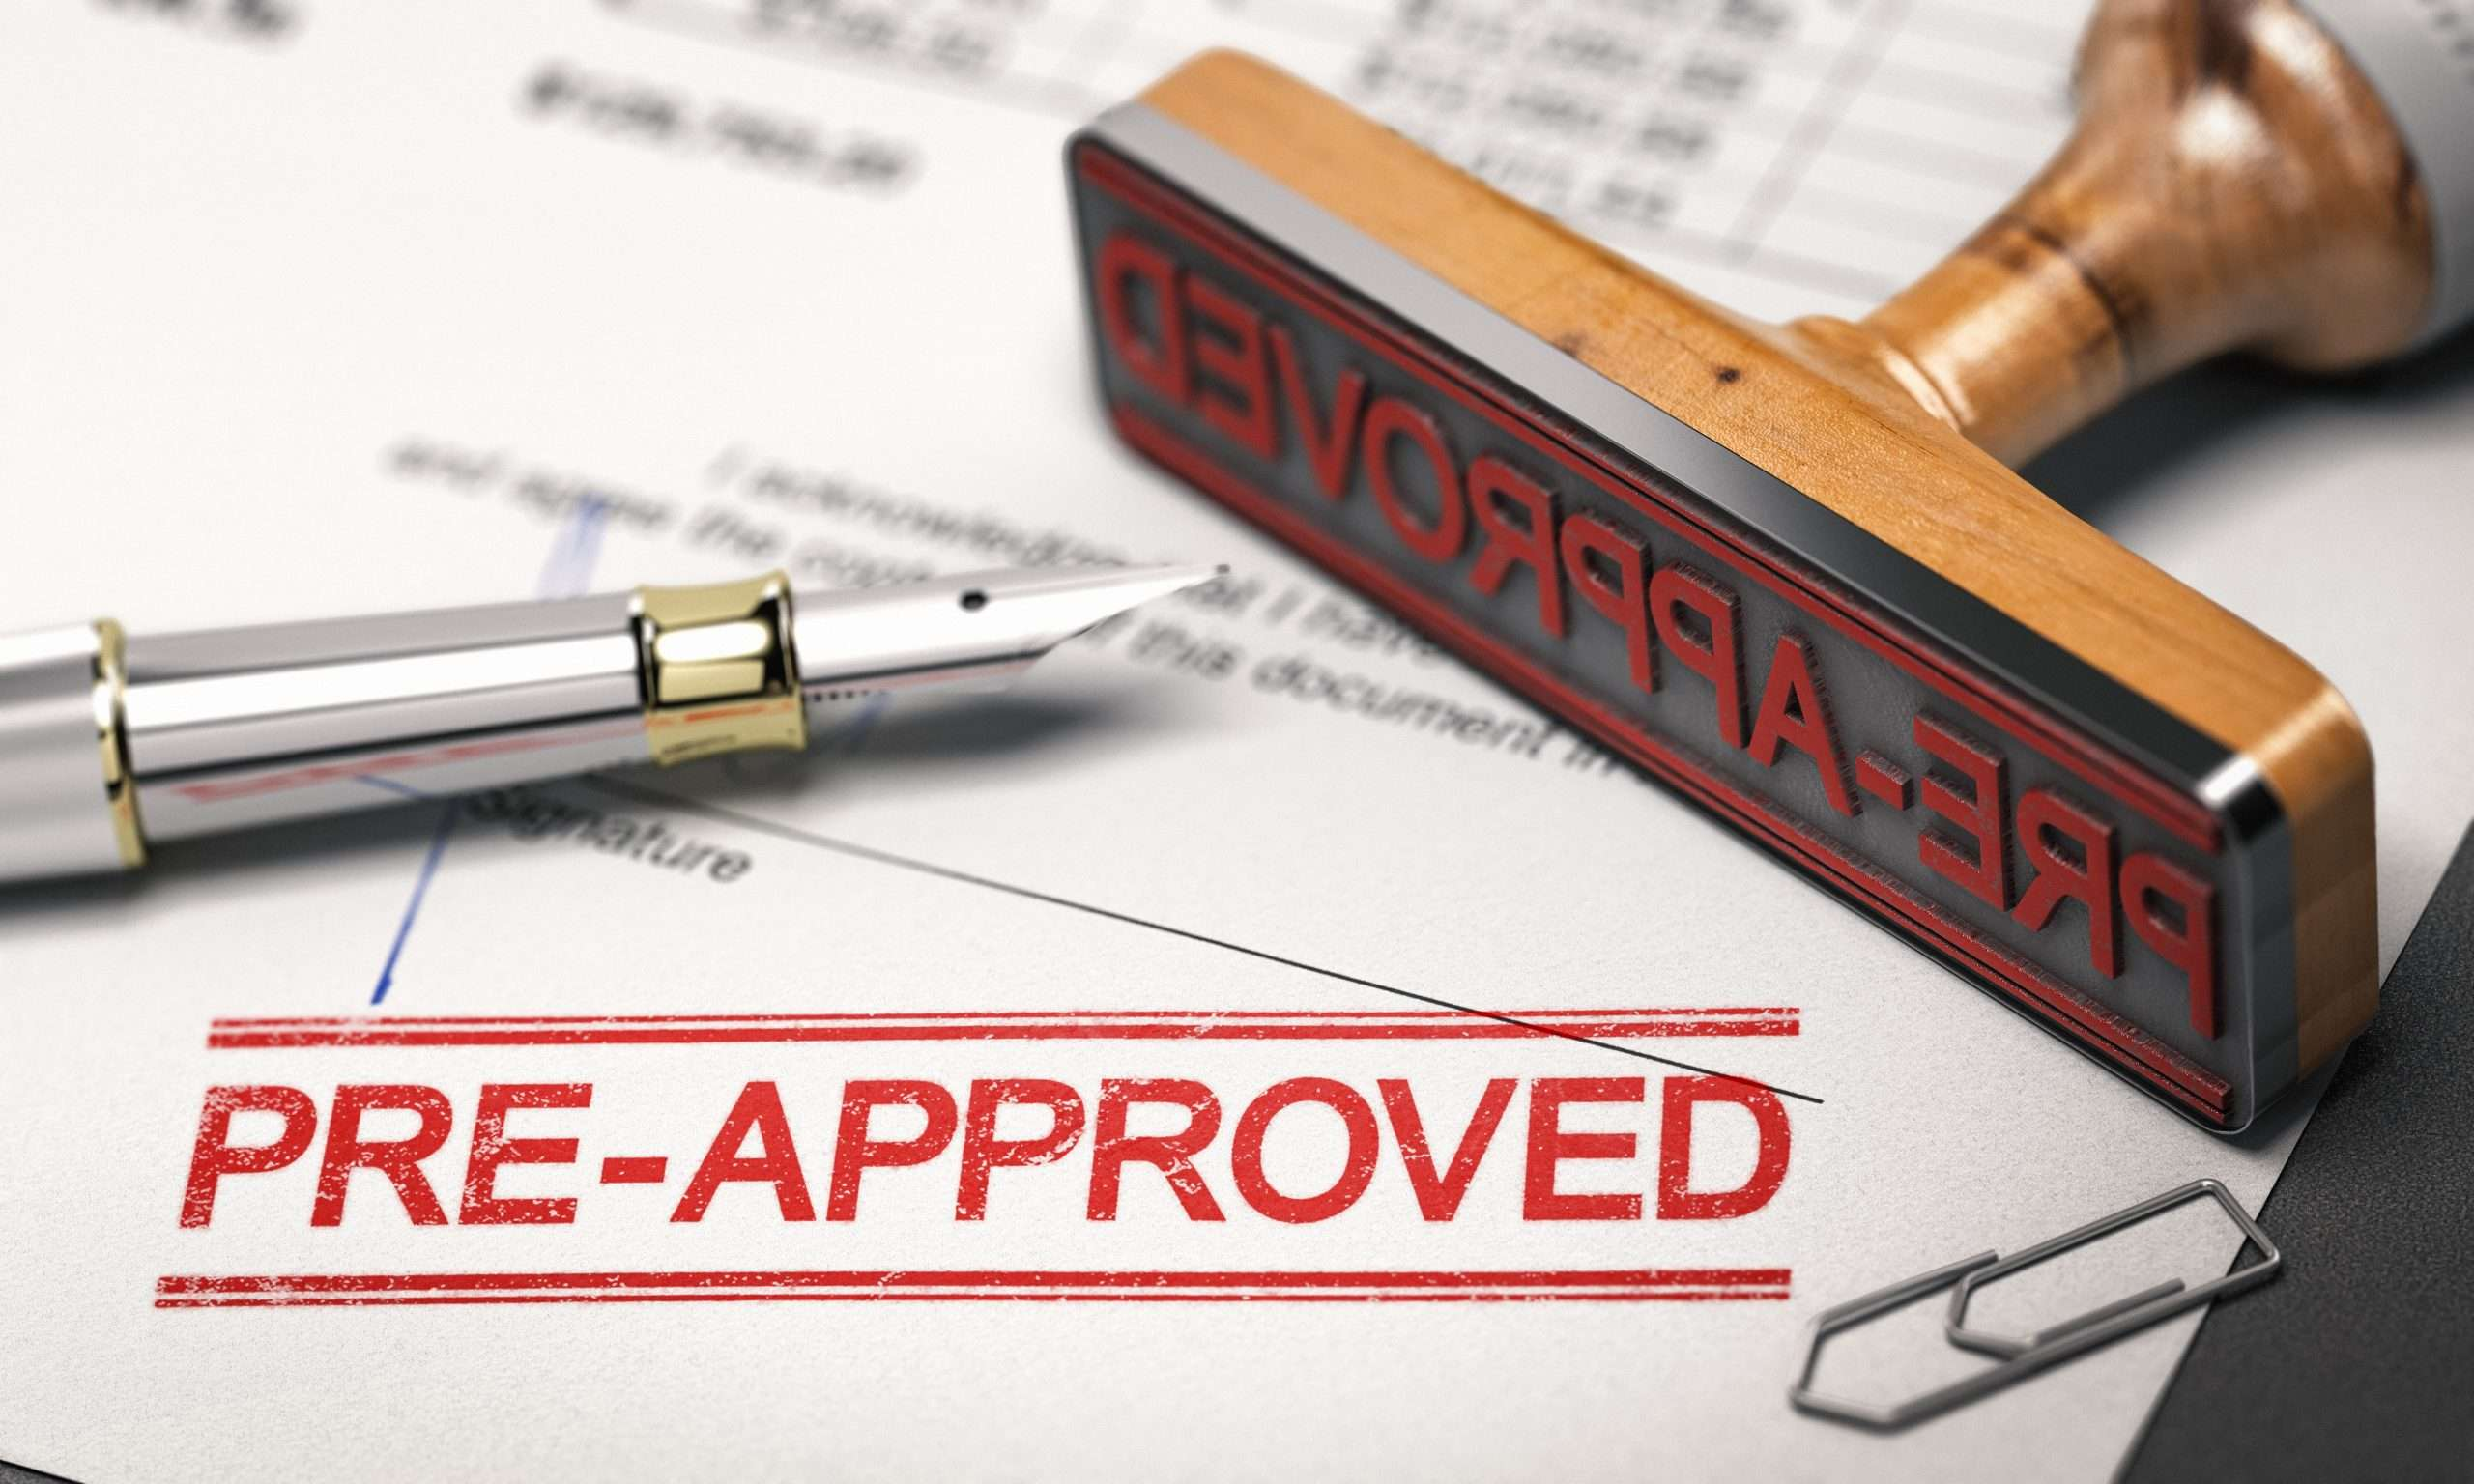 A business is preapproved for financing